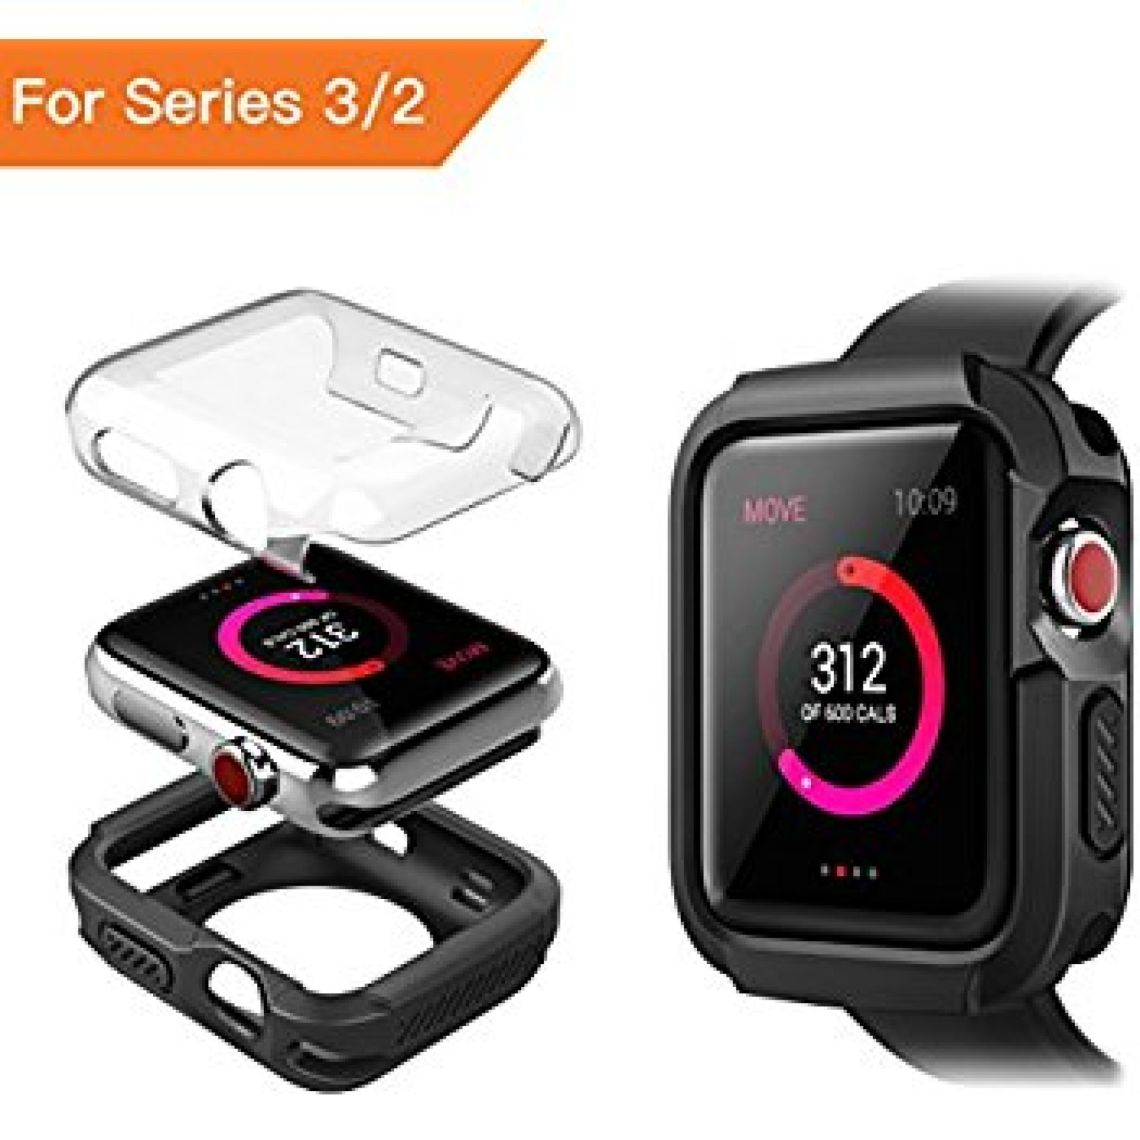 Amazon.com: Apple Watch Series 3 Case, Benuo [Armor Series] Soft TPU Bumper w/Protective HD Clear PC Screen Protector, Ultra Thin, Replacements Cover Case for Apple Watch Series 3/Series 2/Edition/Nike+ 42mm: Cell Phones & Accessories